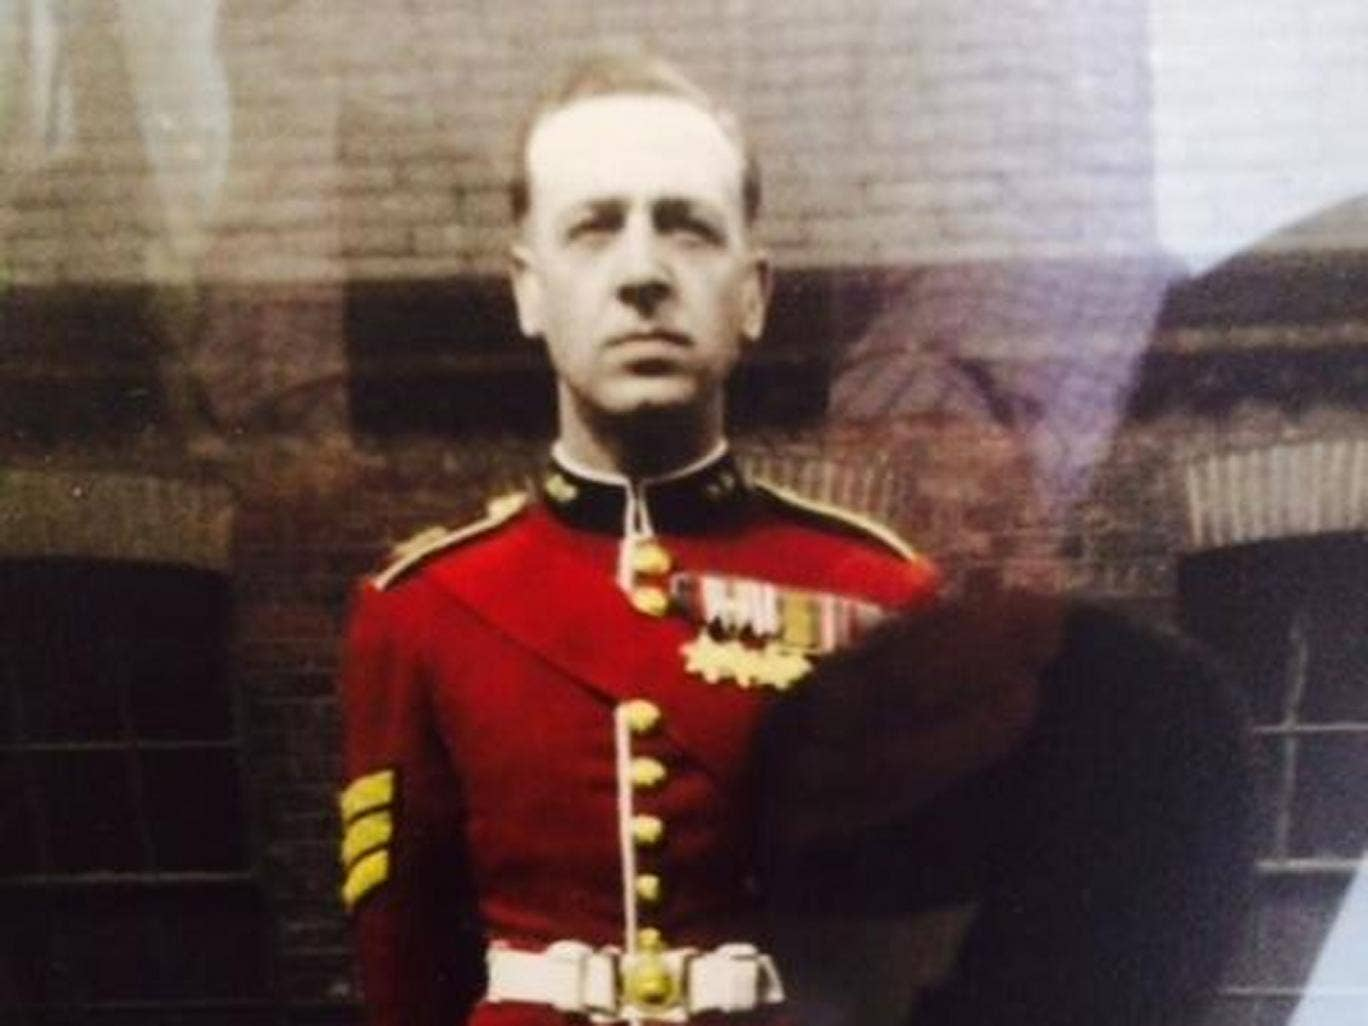 The 92-year-old veteran in a photo issued by MPS Barnet